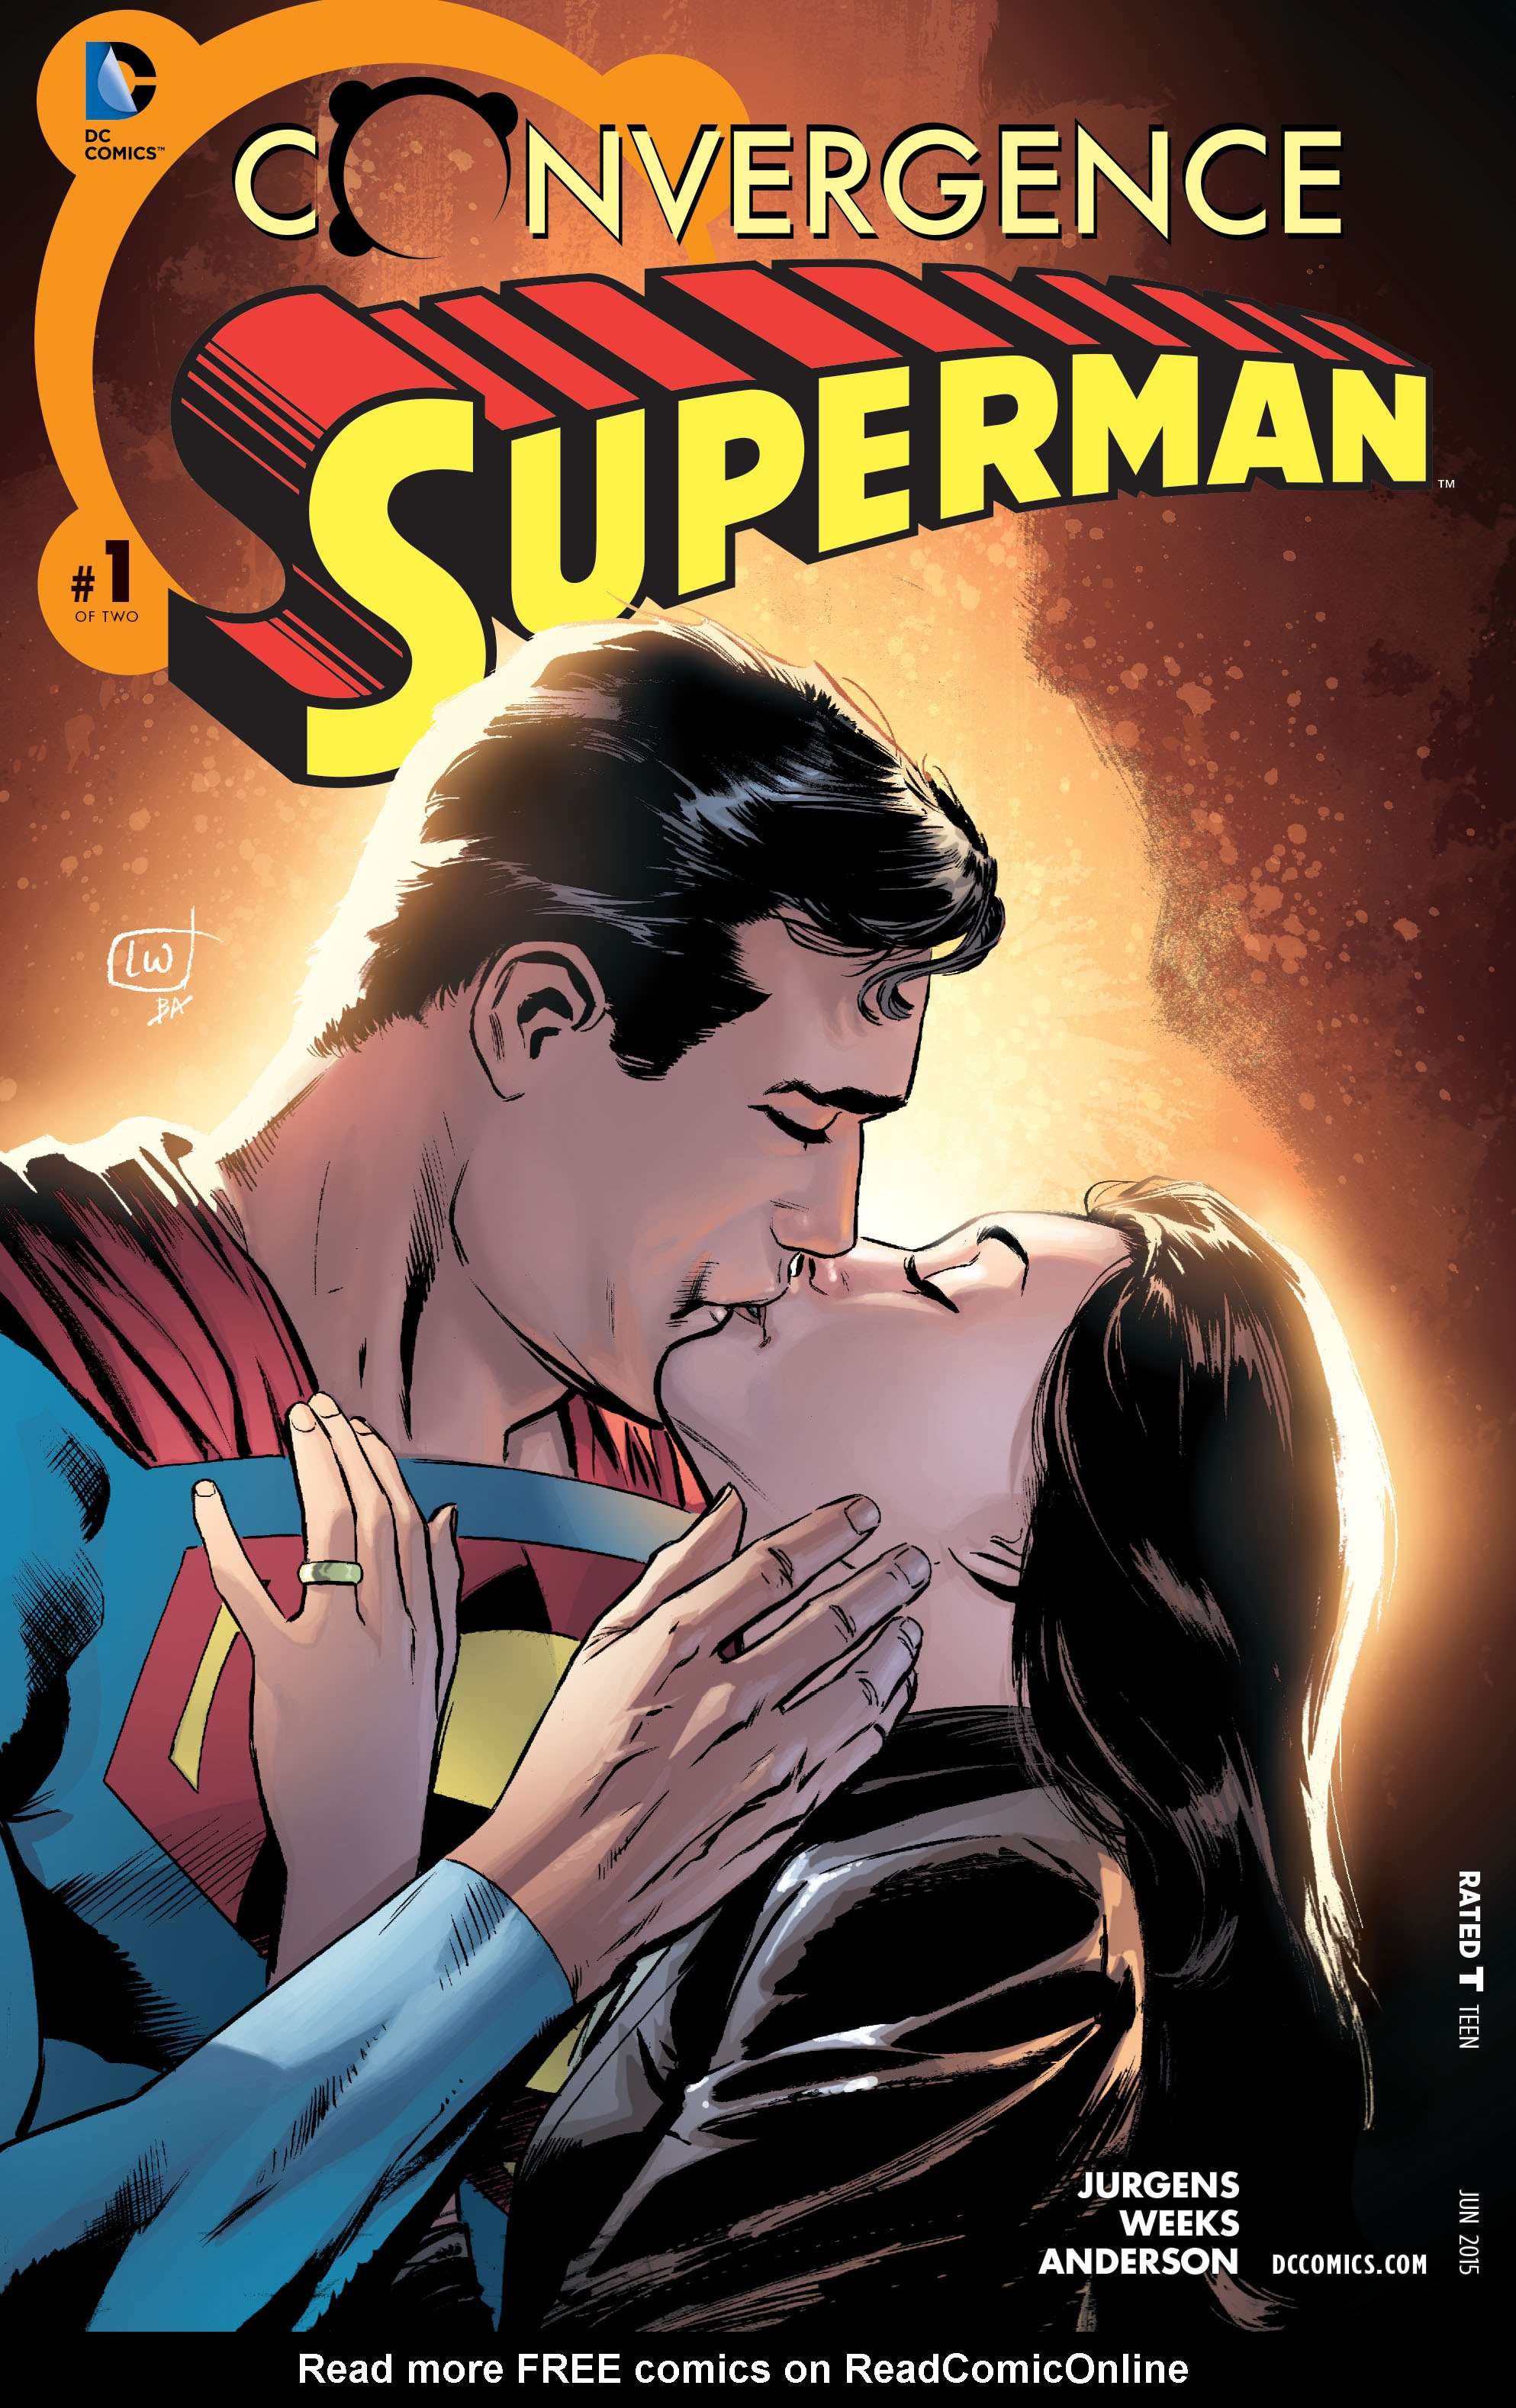 Read online Convergence Superman comic -  Issue #1 - 1